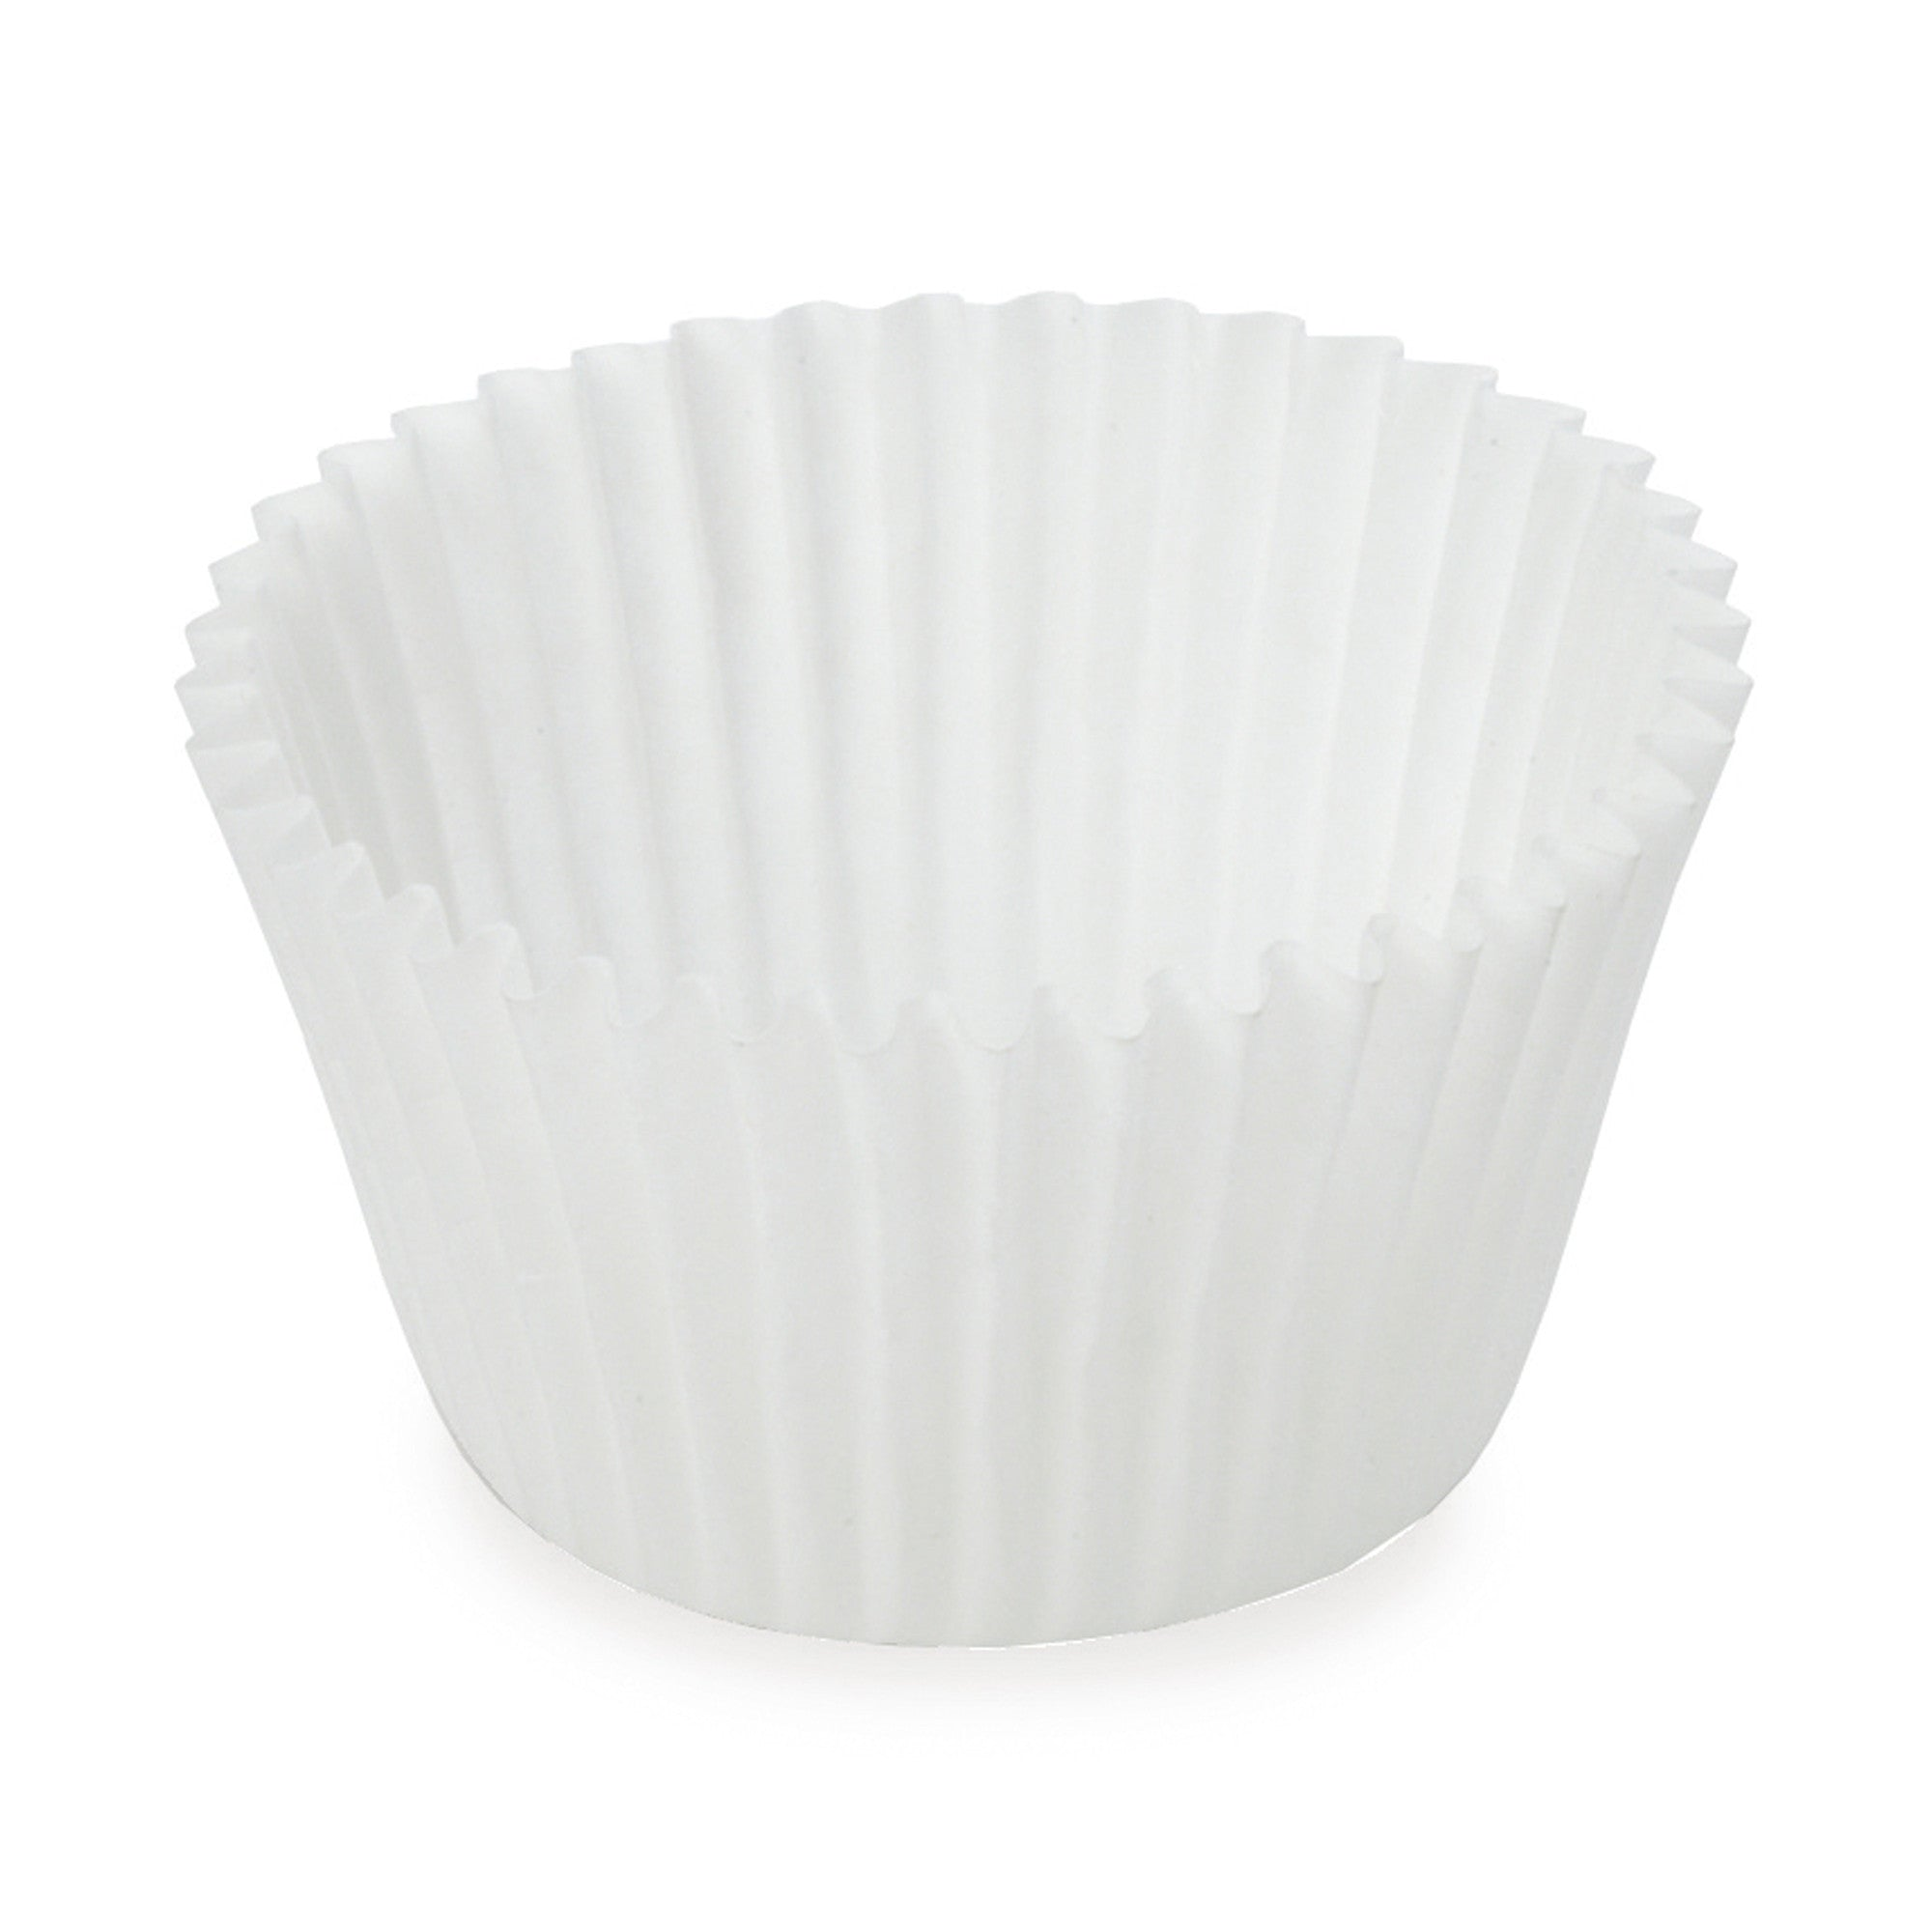 Cupcake Baking Cups, SWC251 - Welcome Home Brands